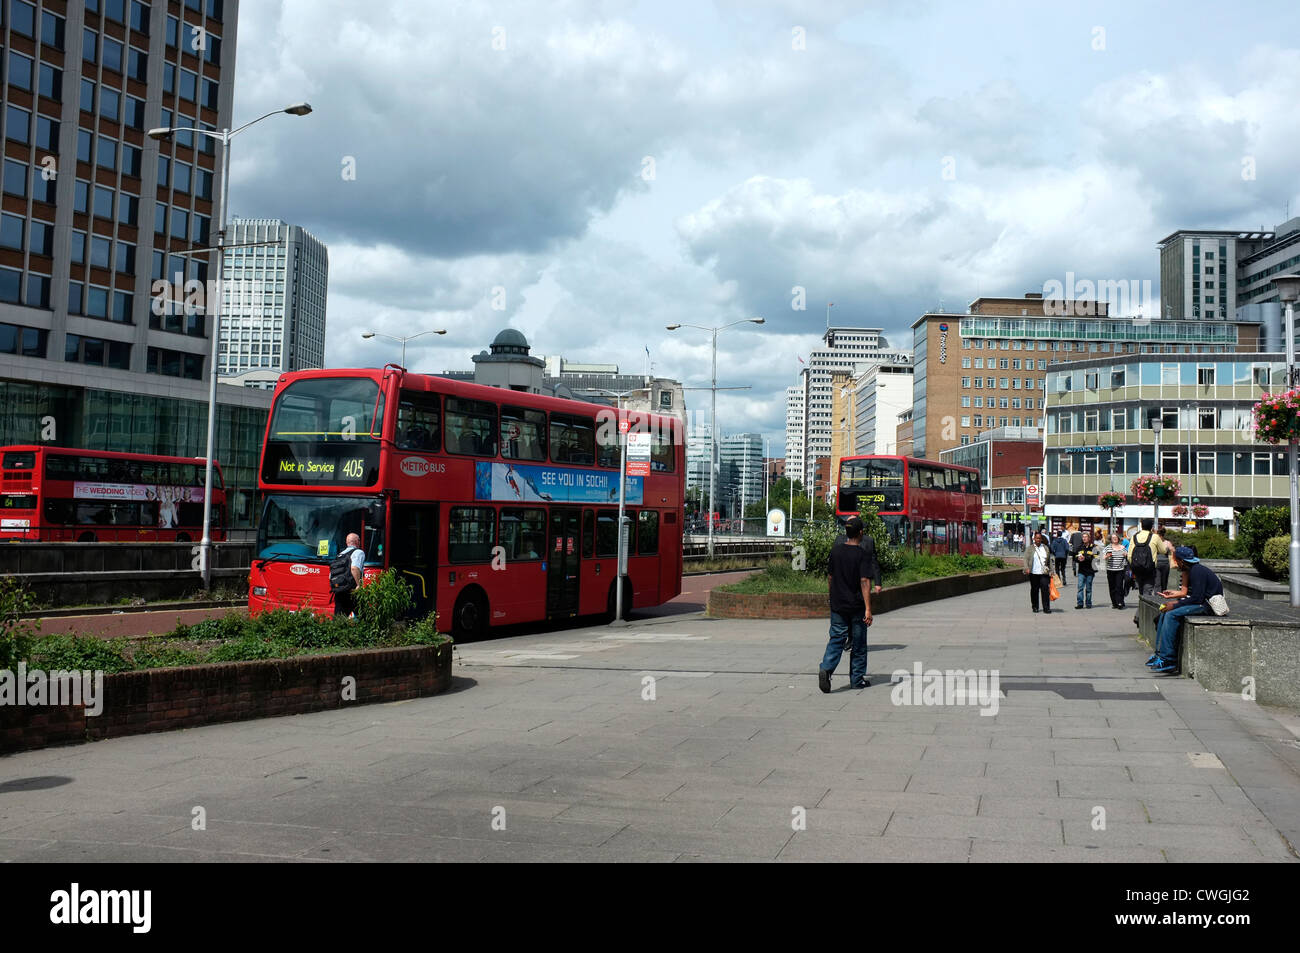 town of croydon surrey uk 2012 - Stock Image